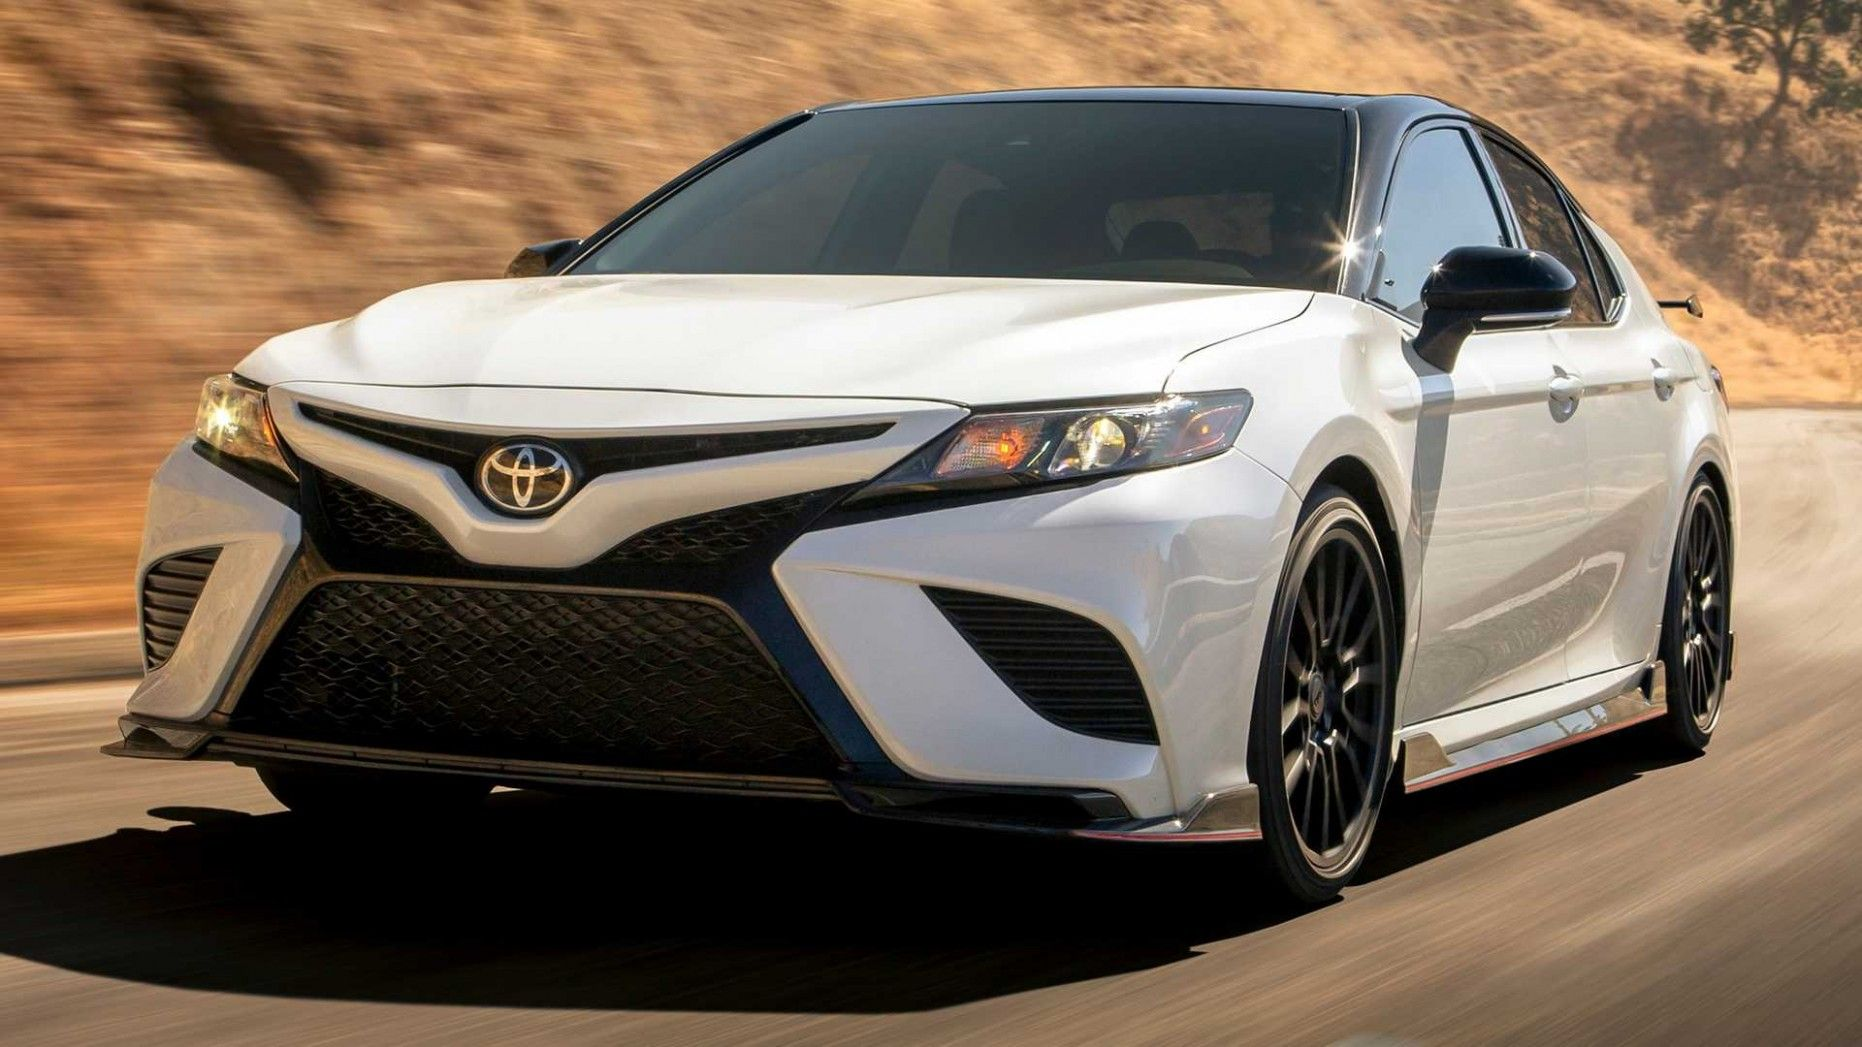 The Ultimate Revelation Of 2021 All Toyota Camry Design Mobil Impian Mobil